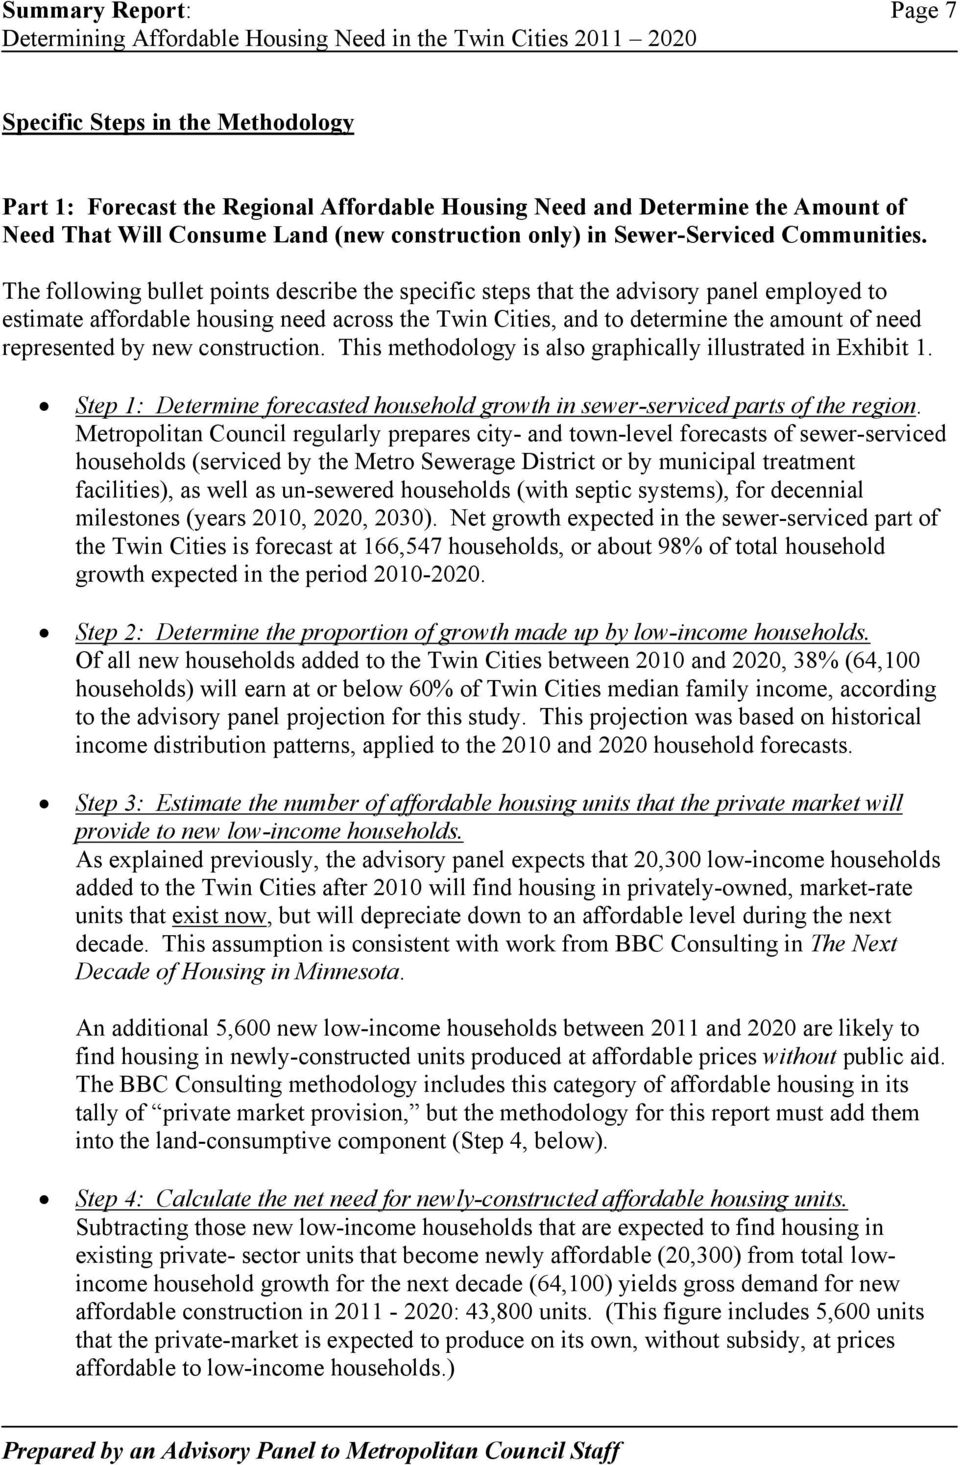 The following bullet points describe the specific steps that the advisory panel employed to estimate affordable housing need across the Twin Cities, and to determine the amount of need represented by